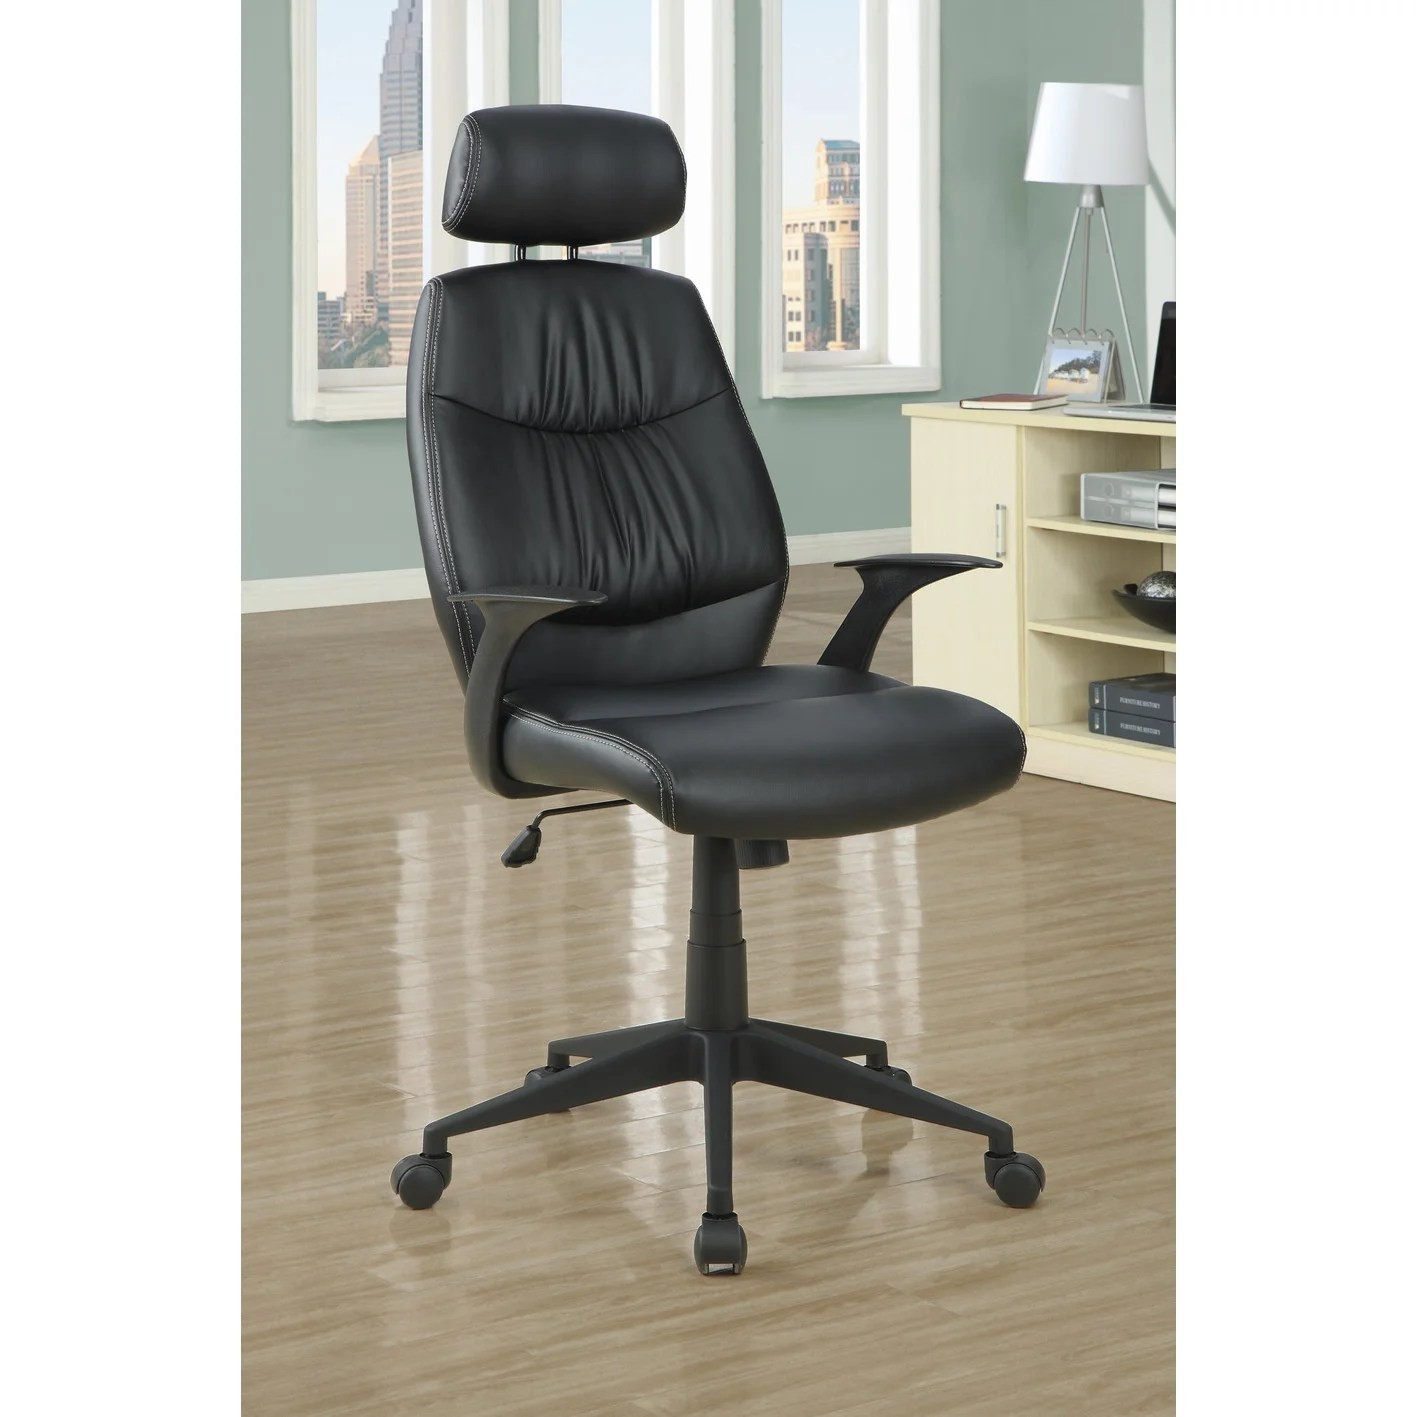 office chair overstock boyd dental chairs black 39retro style 39 leather look free